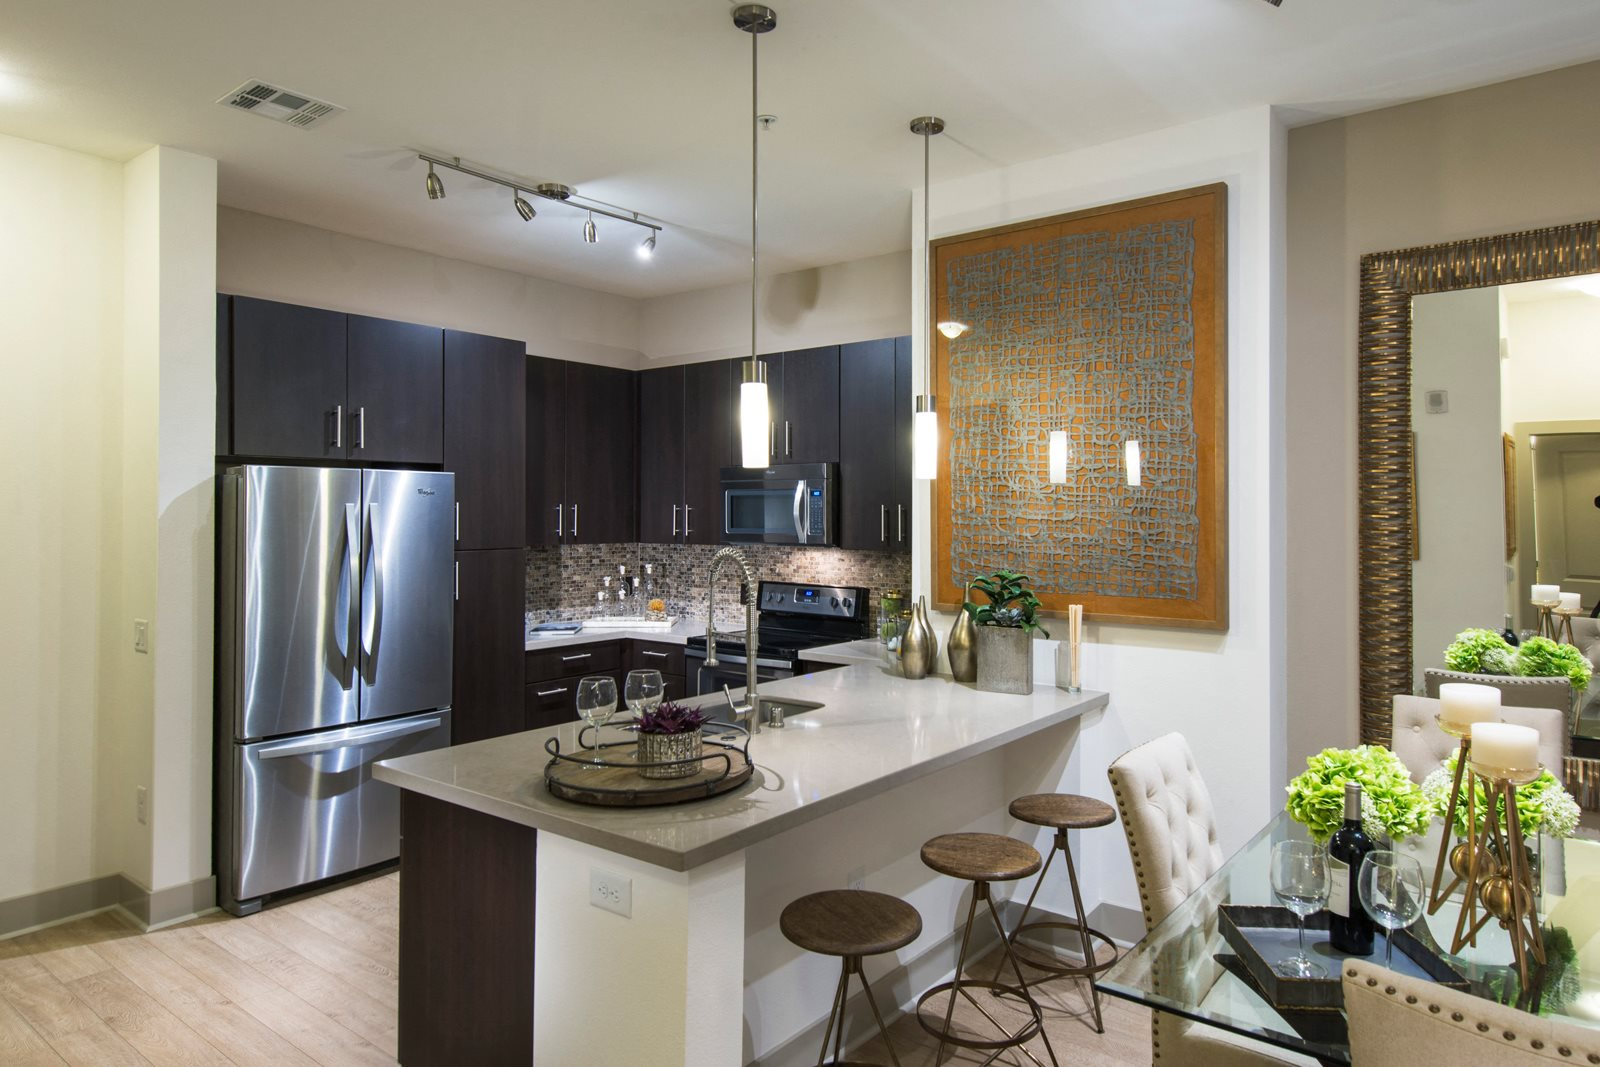 Studio, One and Two Bedroom Apartment Homes at 1000 Grand by Windsor, 1000 S Grand Ave,, Los Angeles